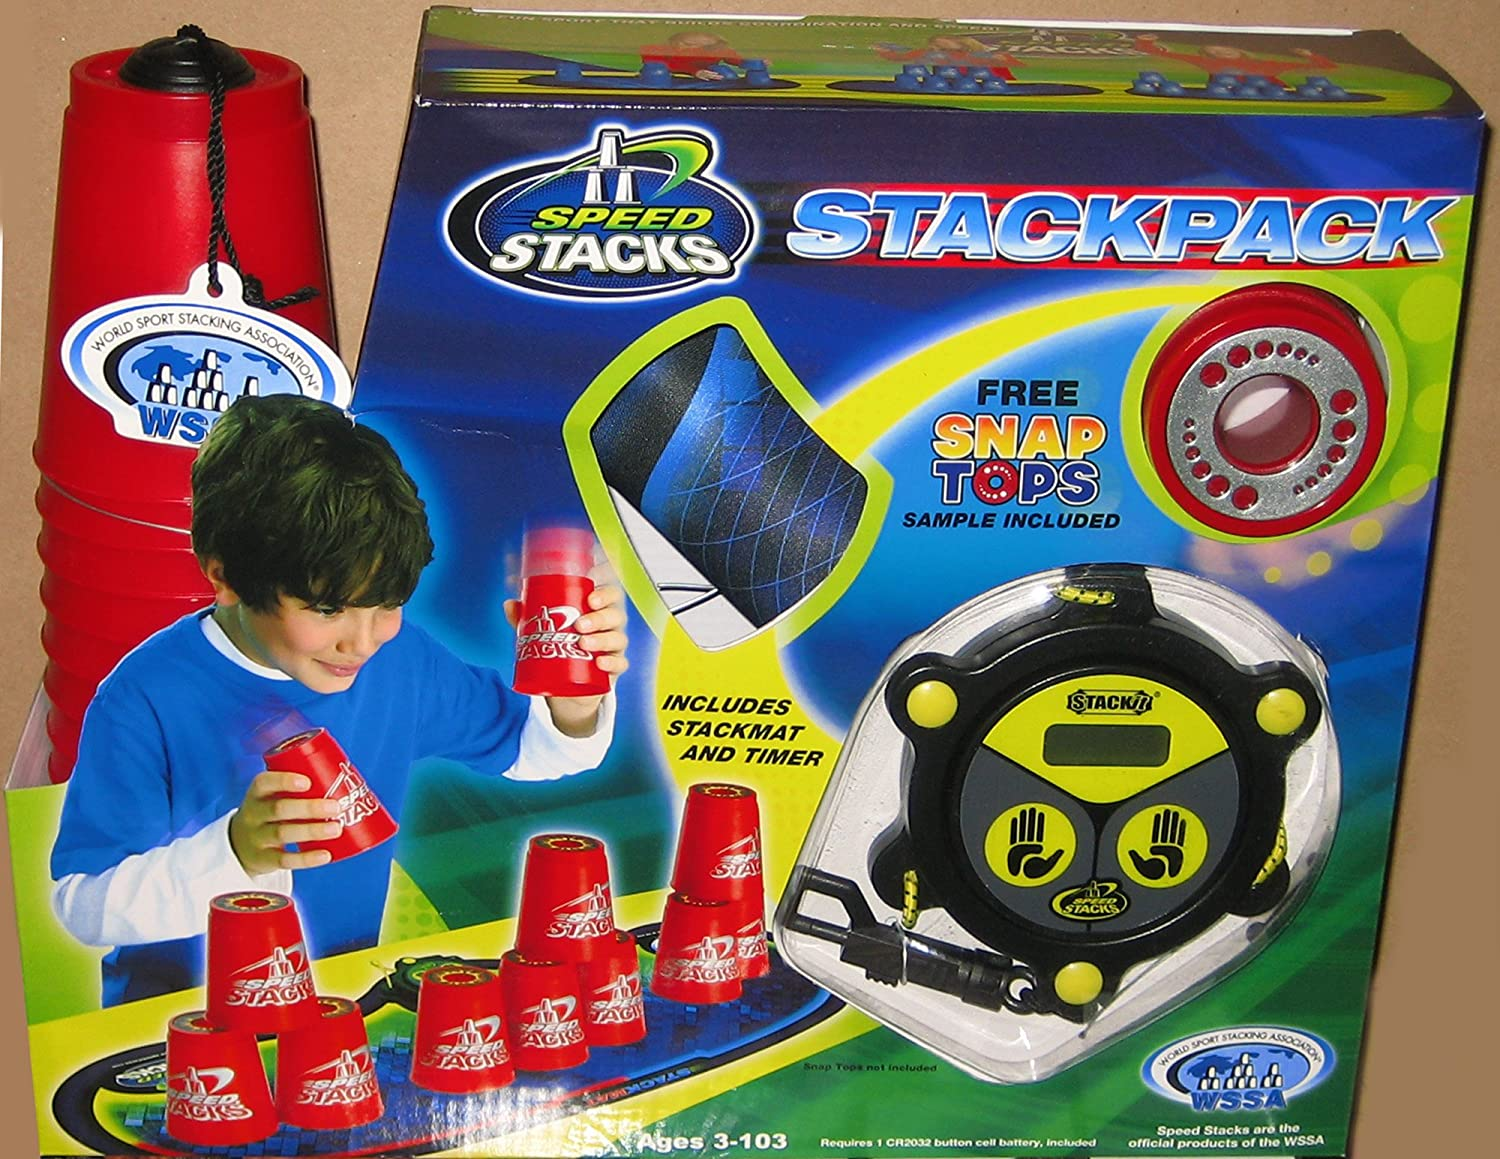 Speedstack RED Plastic Metallic C Competition Nippon regular agency shopping Stackpack Stacking